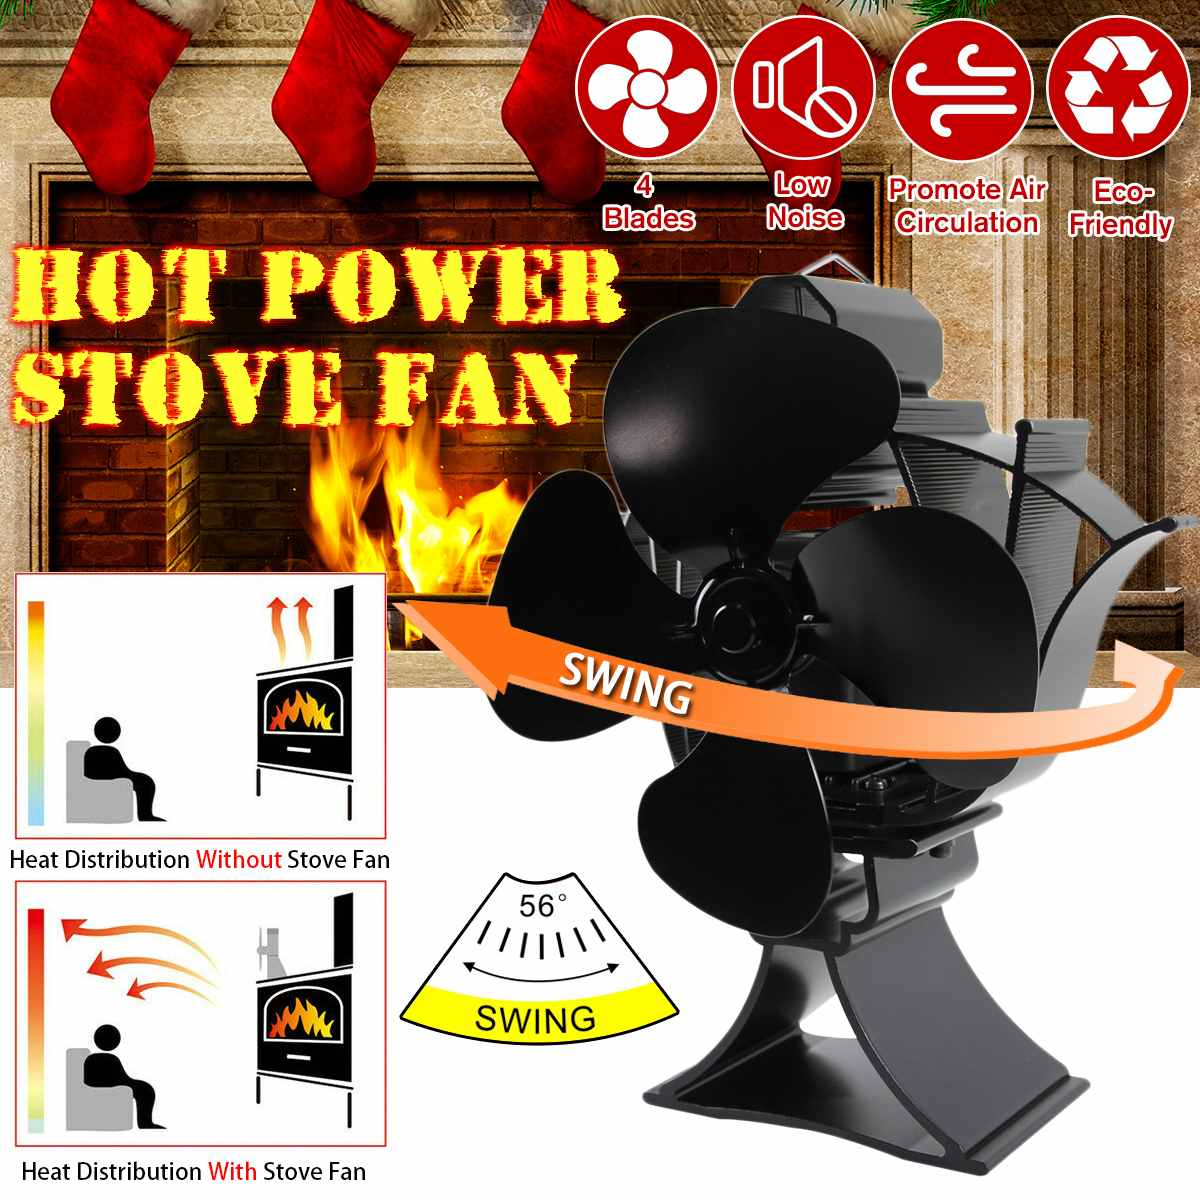 Black Swing Fireplace 4 Blade Heat Powered Stove Fan Log Wood Burner Eco Friendly Quiet Fan Home Efficient Heat Distribution